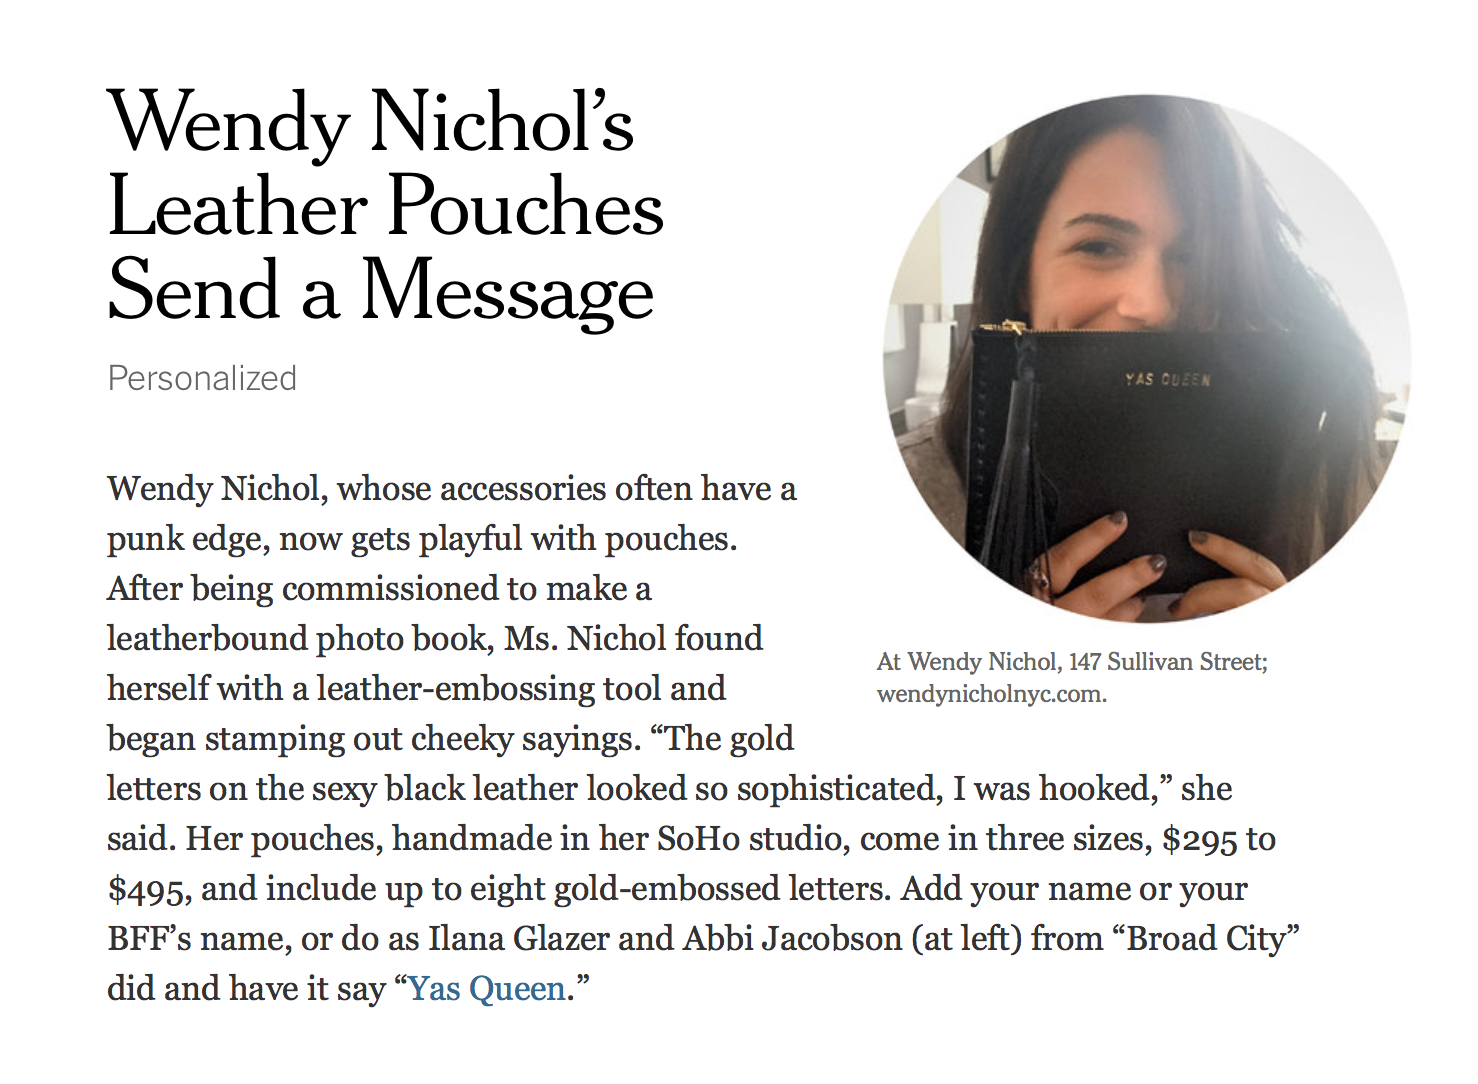 YAS QUEEN Abbi Jacobson Broad City Wendy Nichol New York Times NYTimes.com Wendy Nichol's Leather Pouches Send a Message Broad City Beyonce Leather Large Laced Clutch Pouch Custom Embossed Initial Letter Monogram Card Phone Wallet Clutch Wendy Nichol Designer Purse handbags Handmade in NYC New York City Zip Zipper Pouch Smooth Black High Quality Leather Fringe Tassel Gold Silver Foil YAS QUEEN FUCK YES FUCK YEAH FUCK OFF FUCK NO FUCK YOU